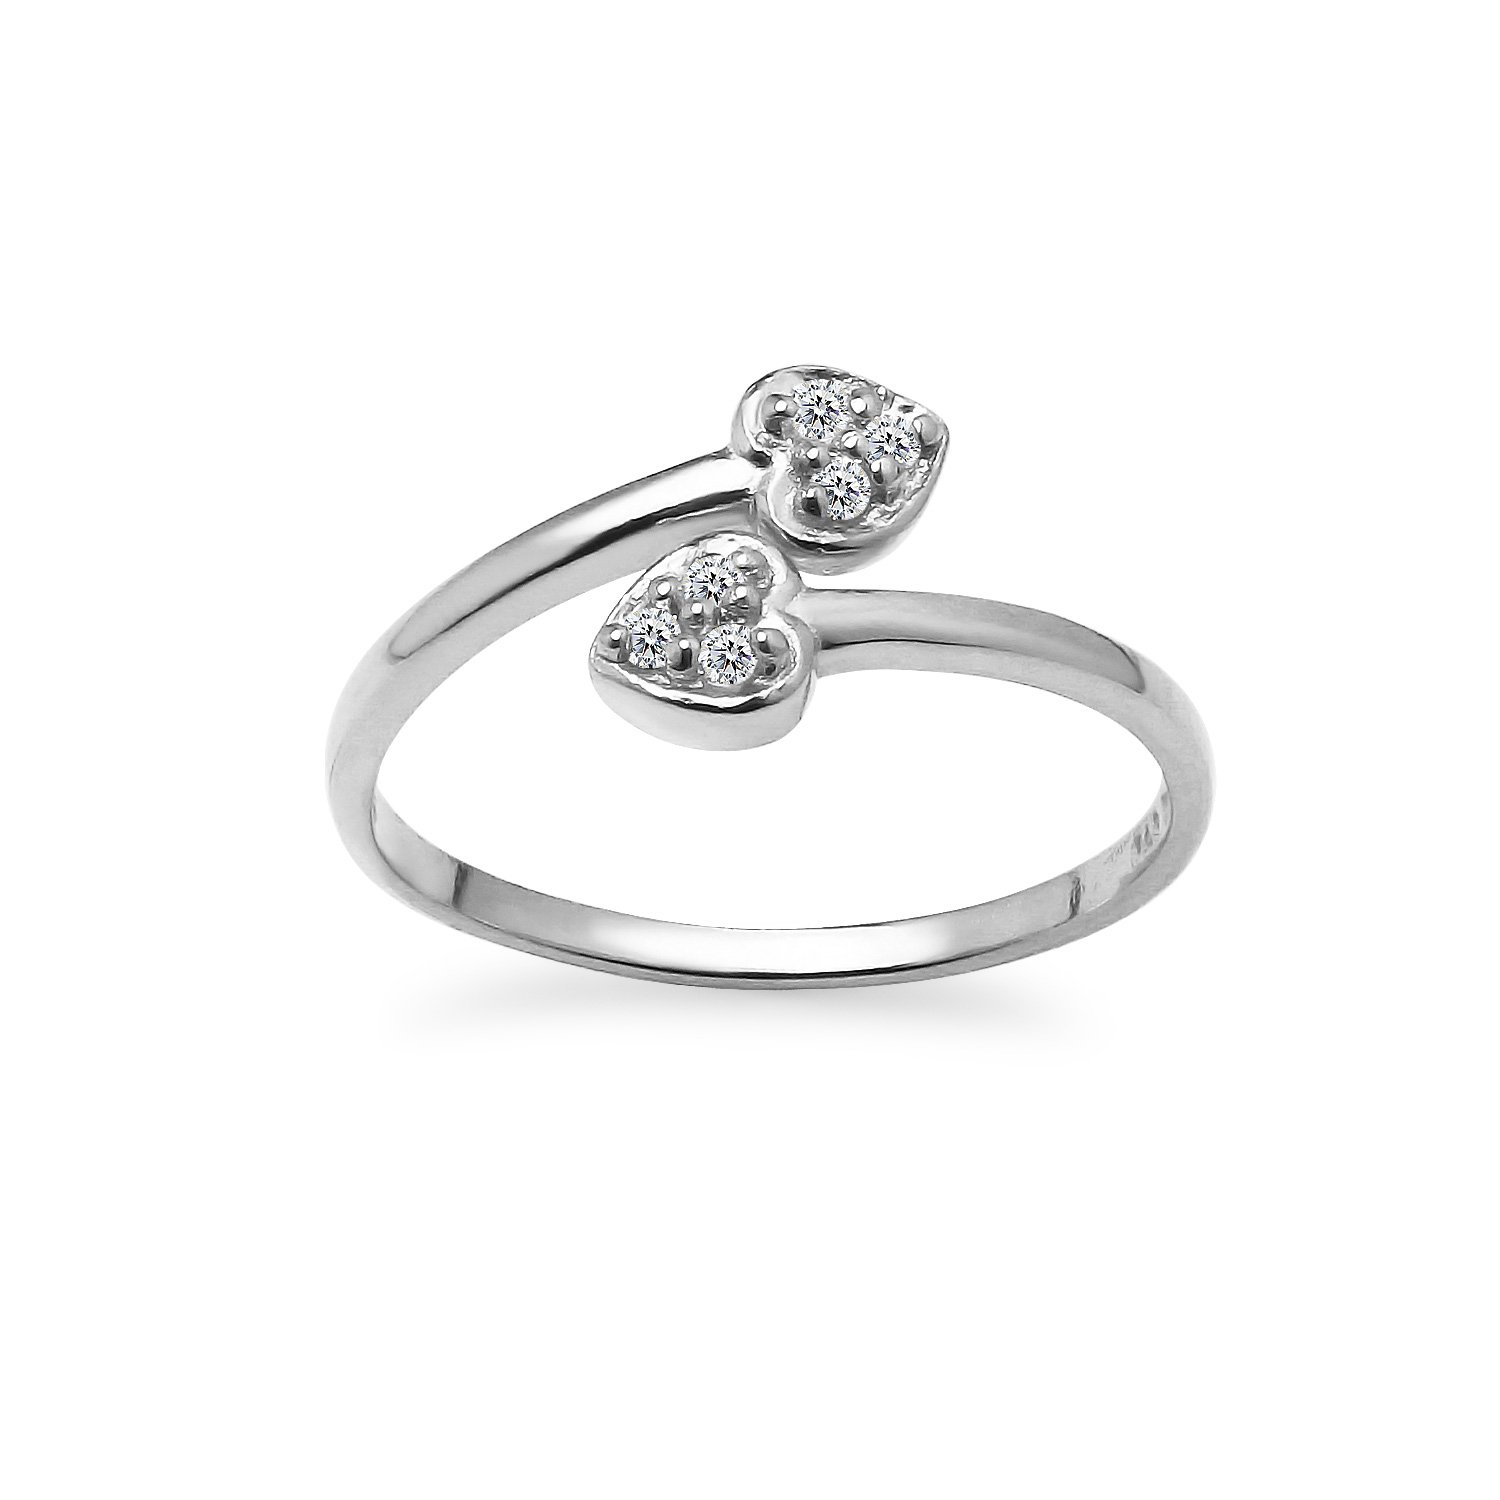 River Island Sterling Silver Cubic Zirconia Bypass Double Heart Adjustable Toe Ring  Available in Silver Rose and Yellow Gold.